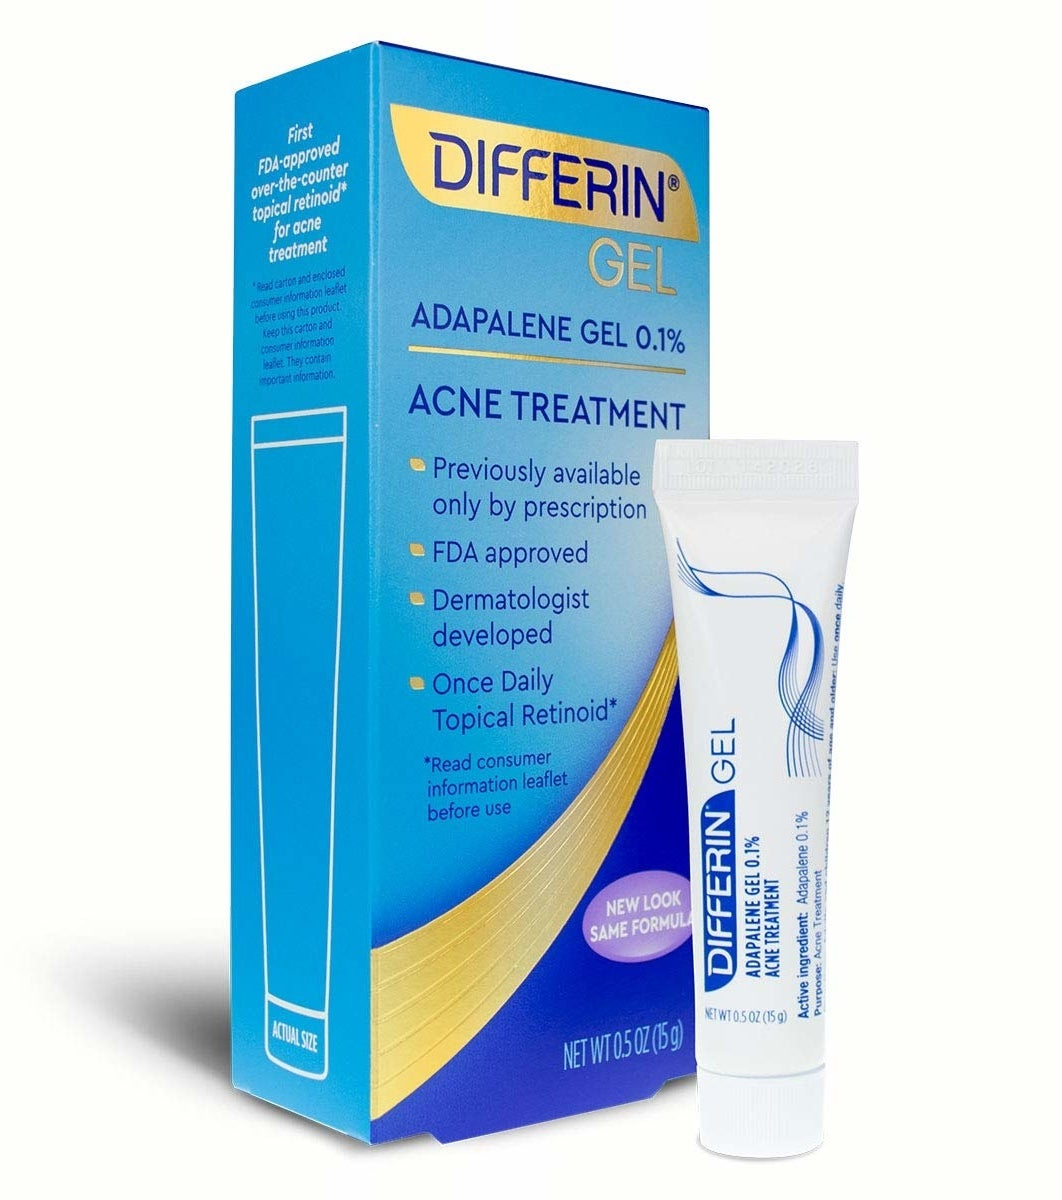 A tube of Differin Adapalene Gel 0.1% Acne Treatment.